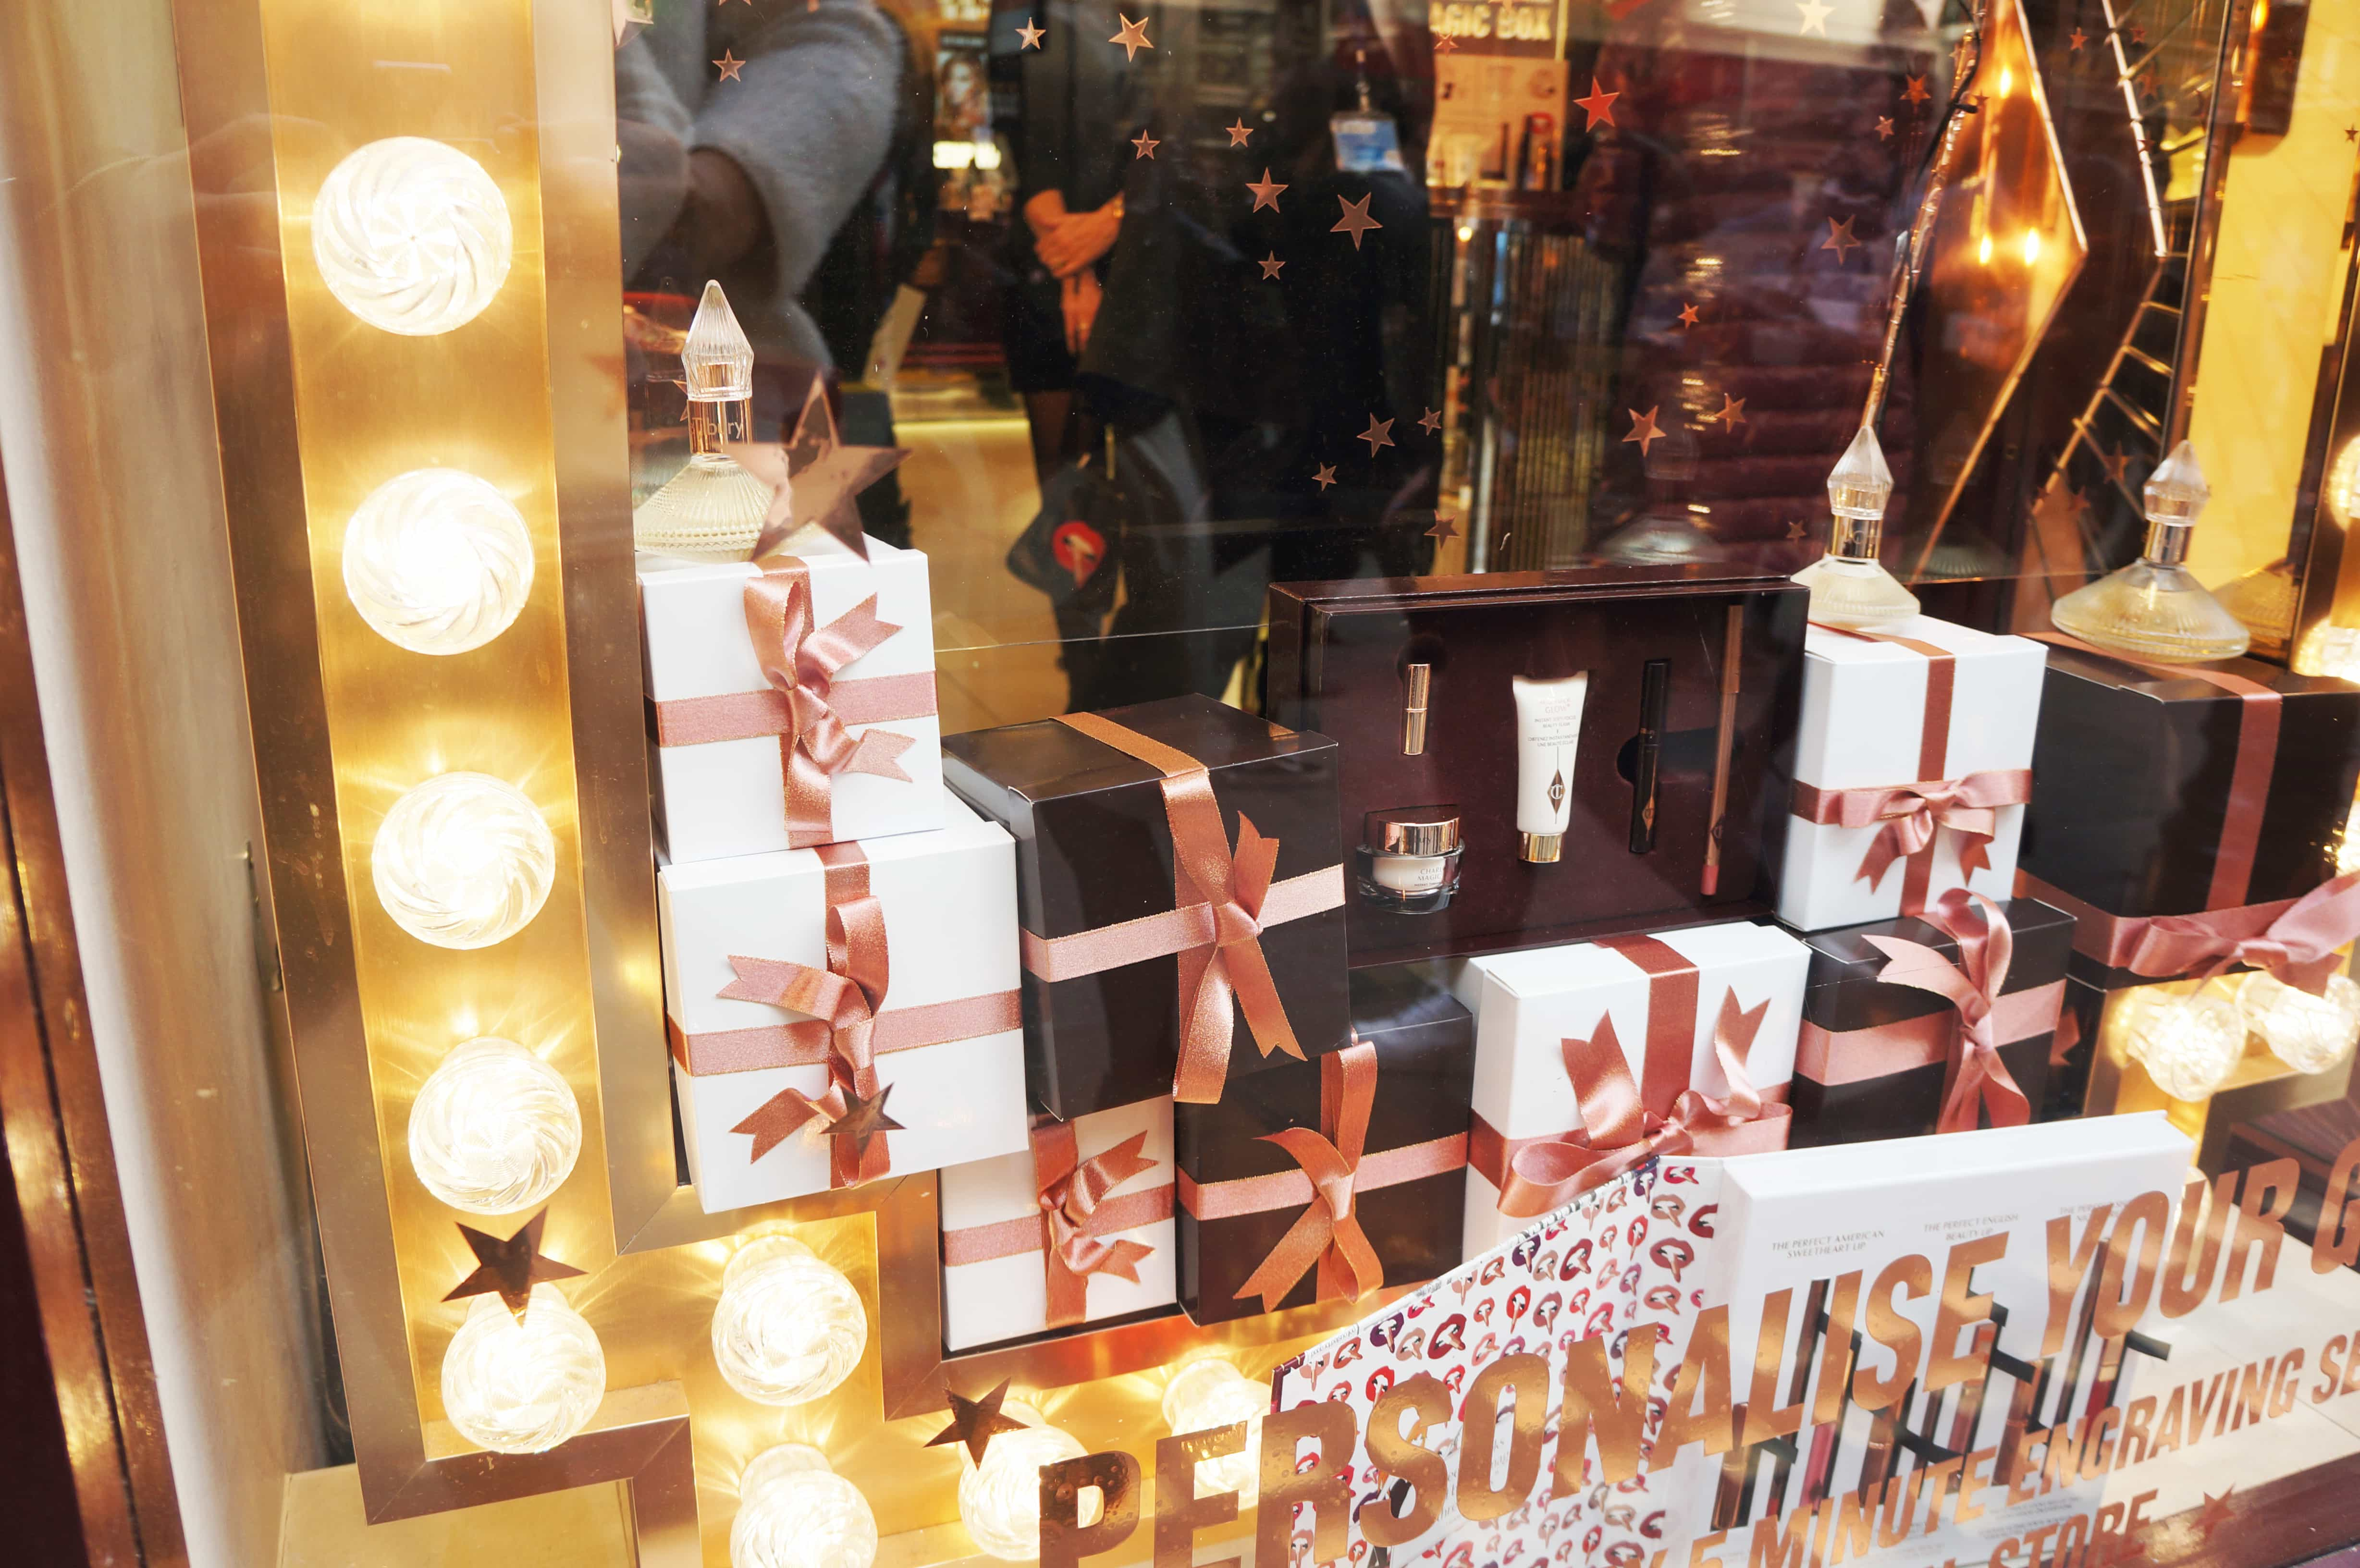 Presents wrapped in a window display